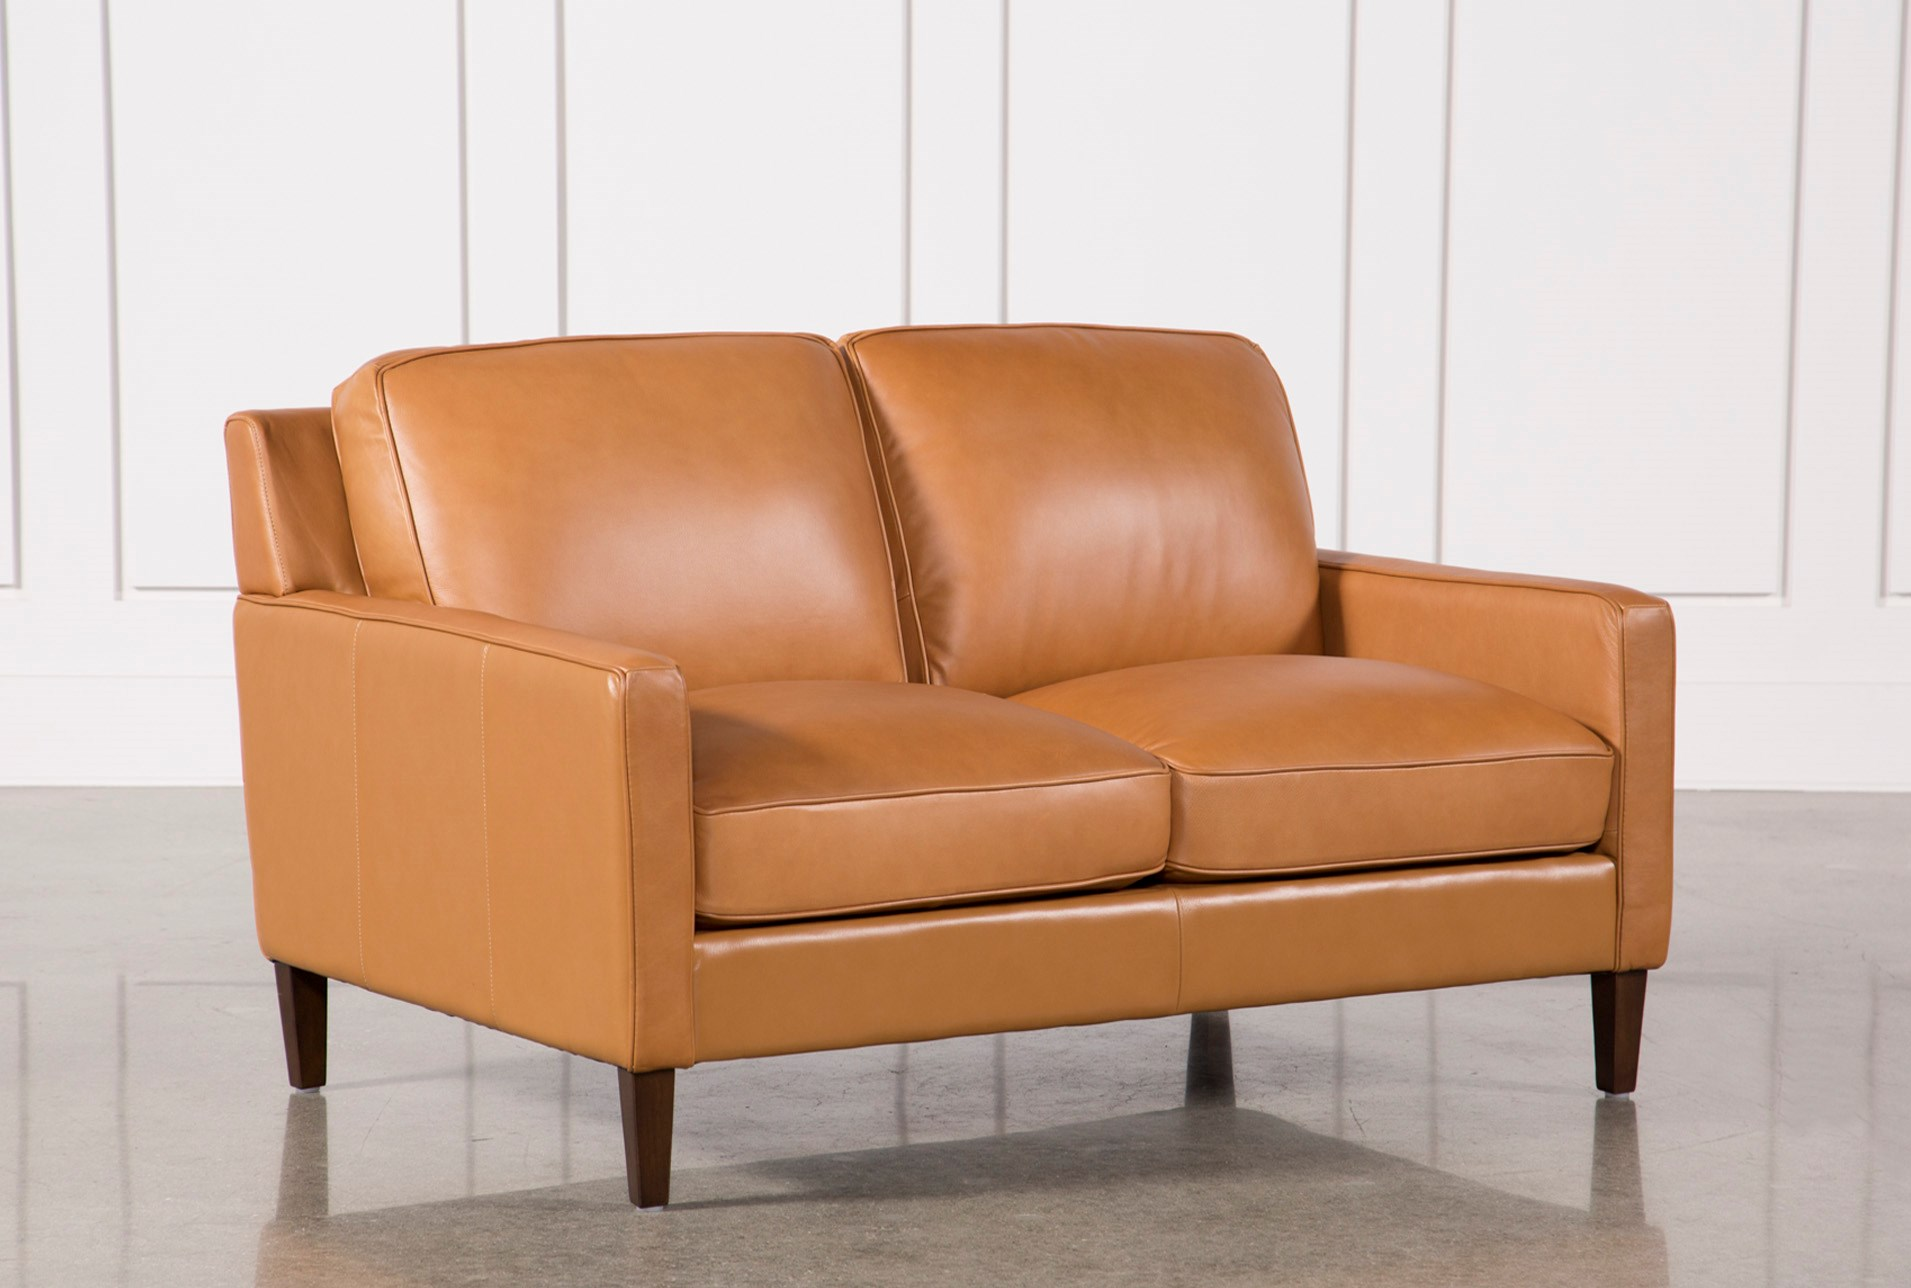 Lovely Candace Leather Loveseat | Living Spaces IG21